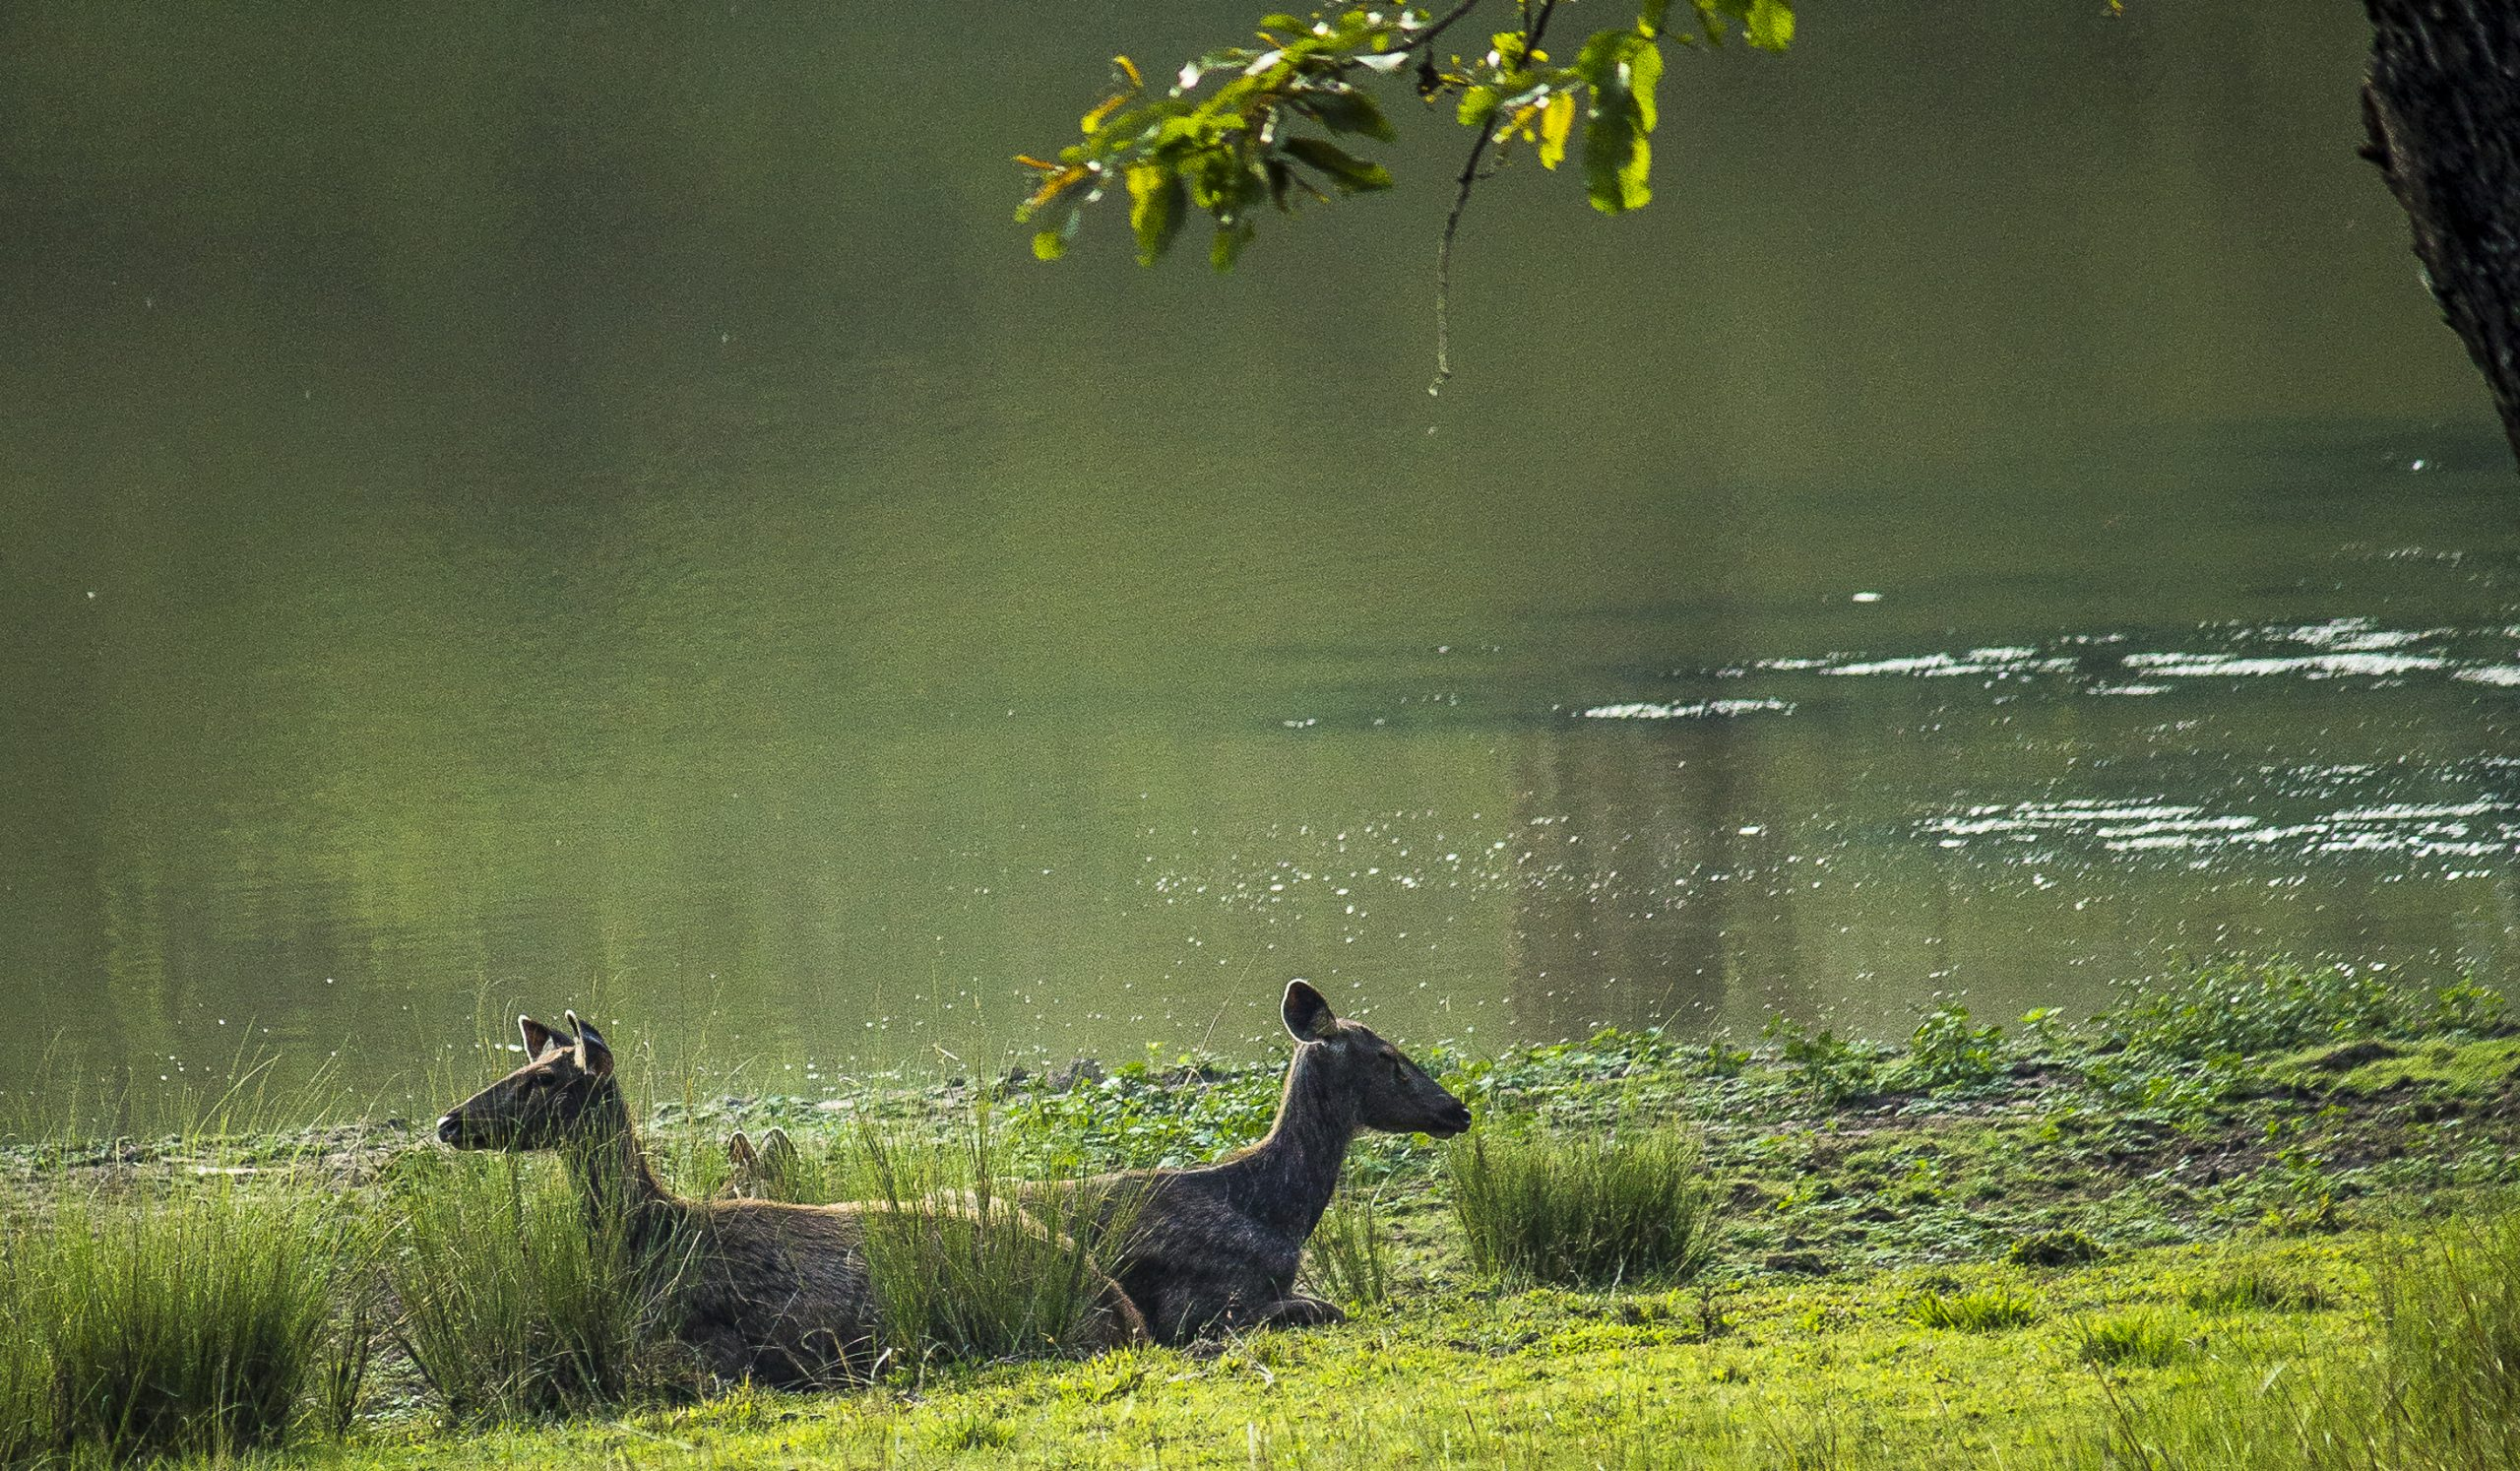 Deer resting near a lake